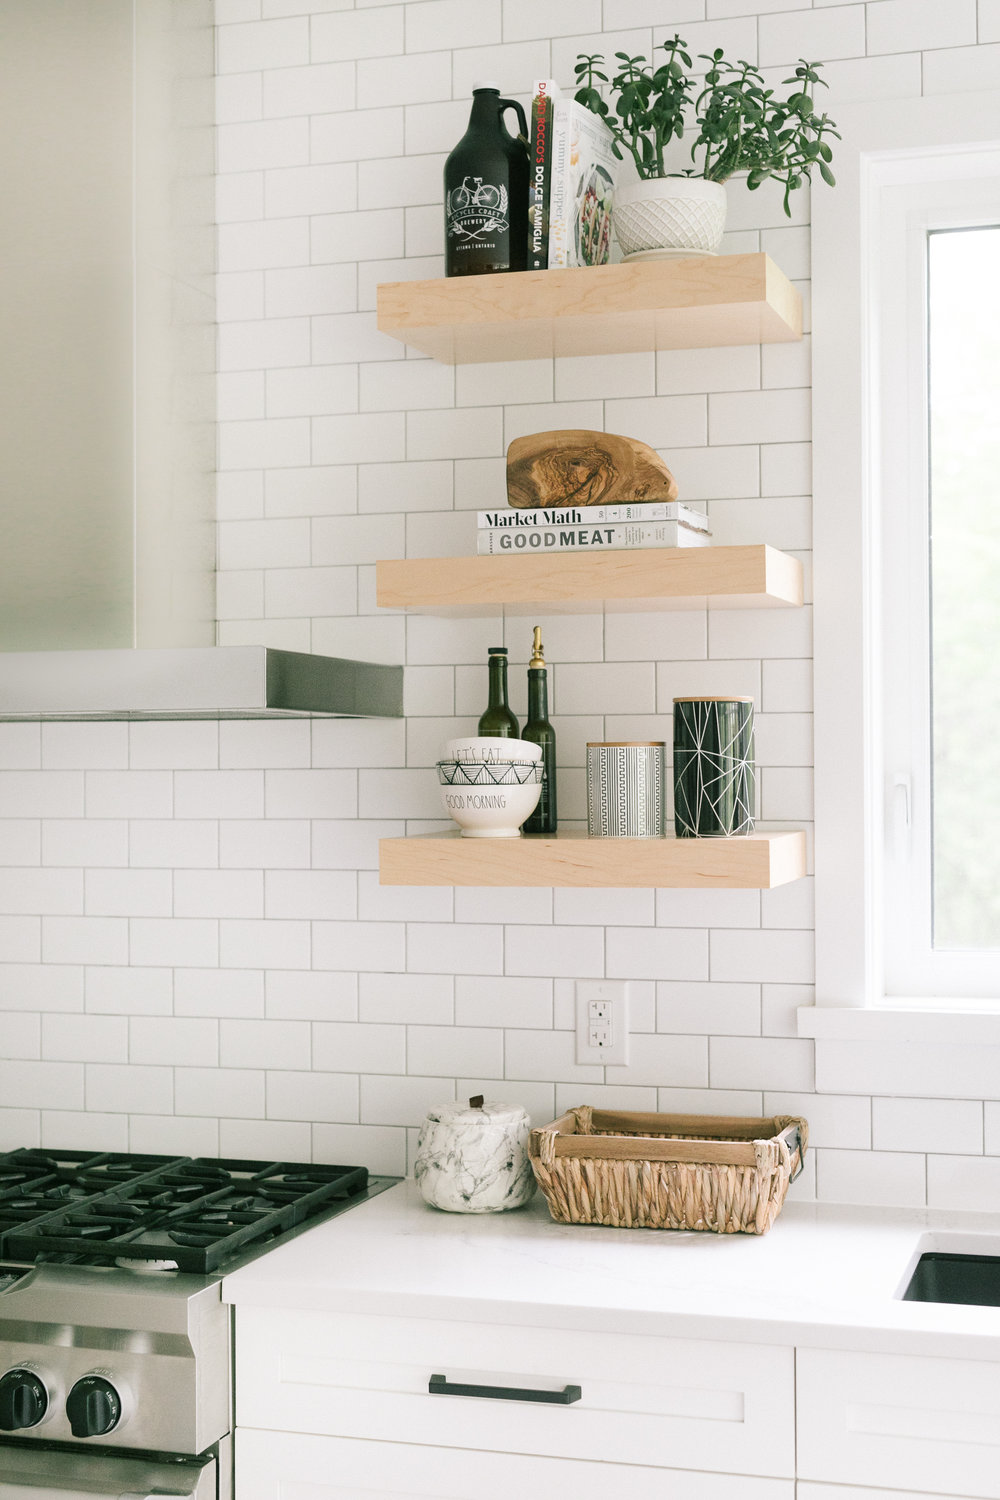 Interior-Design-Kitchen-Floating-Wood-Shelf